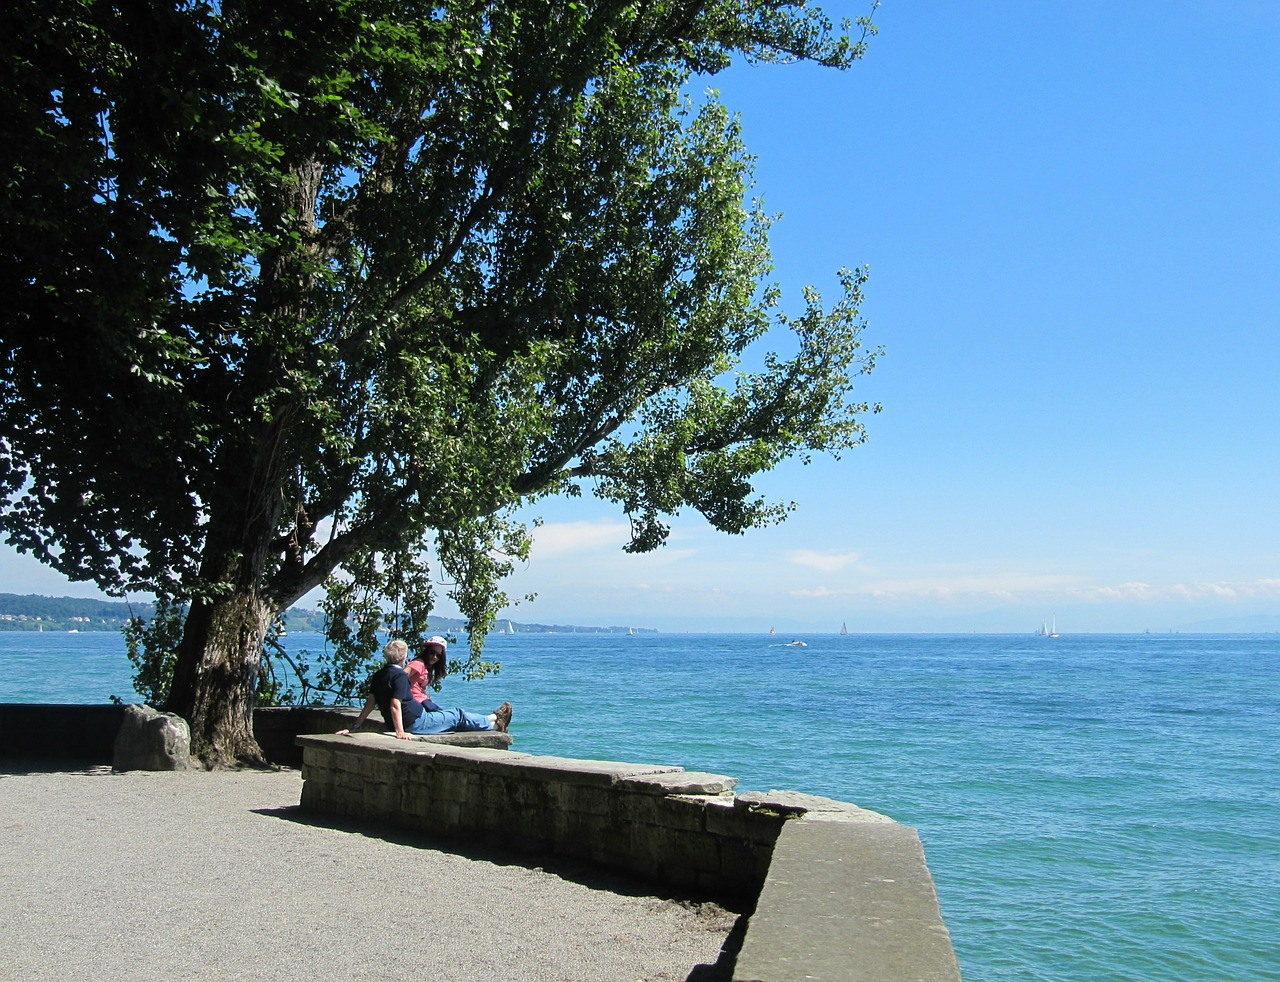 lake constance mainau island free photo